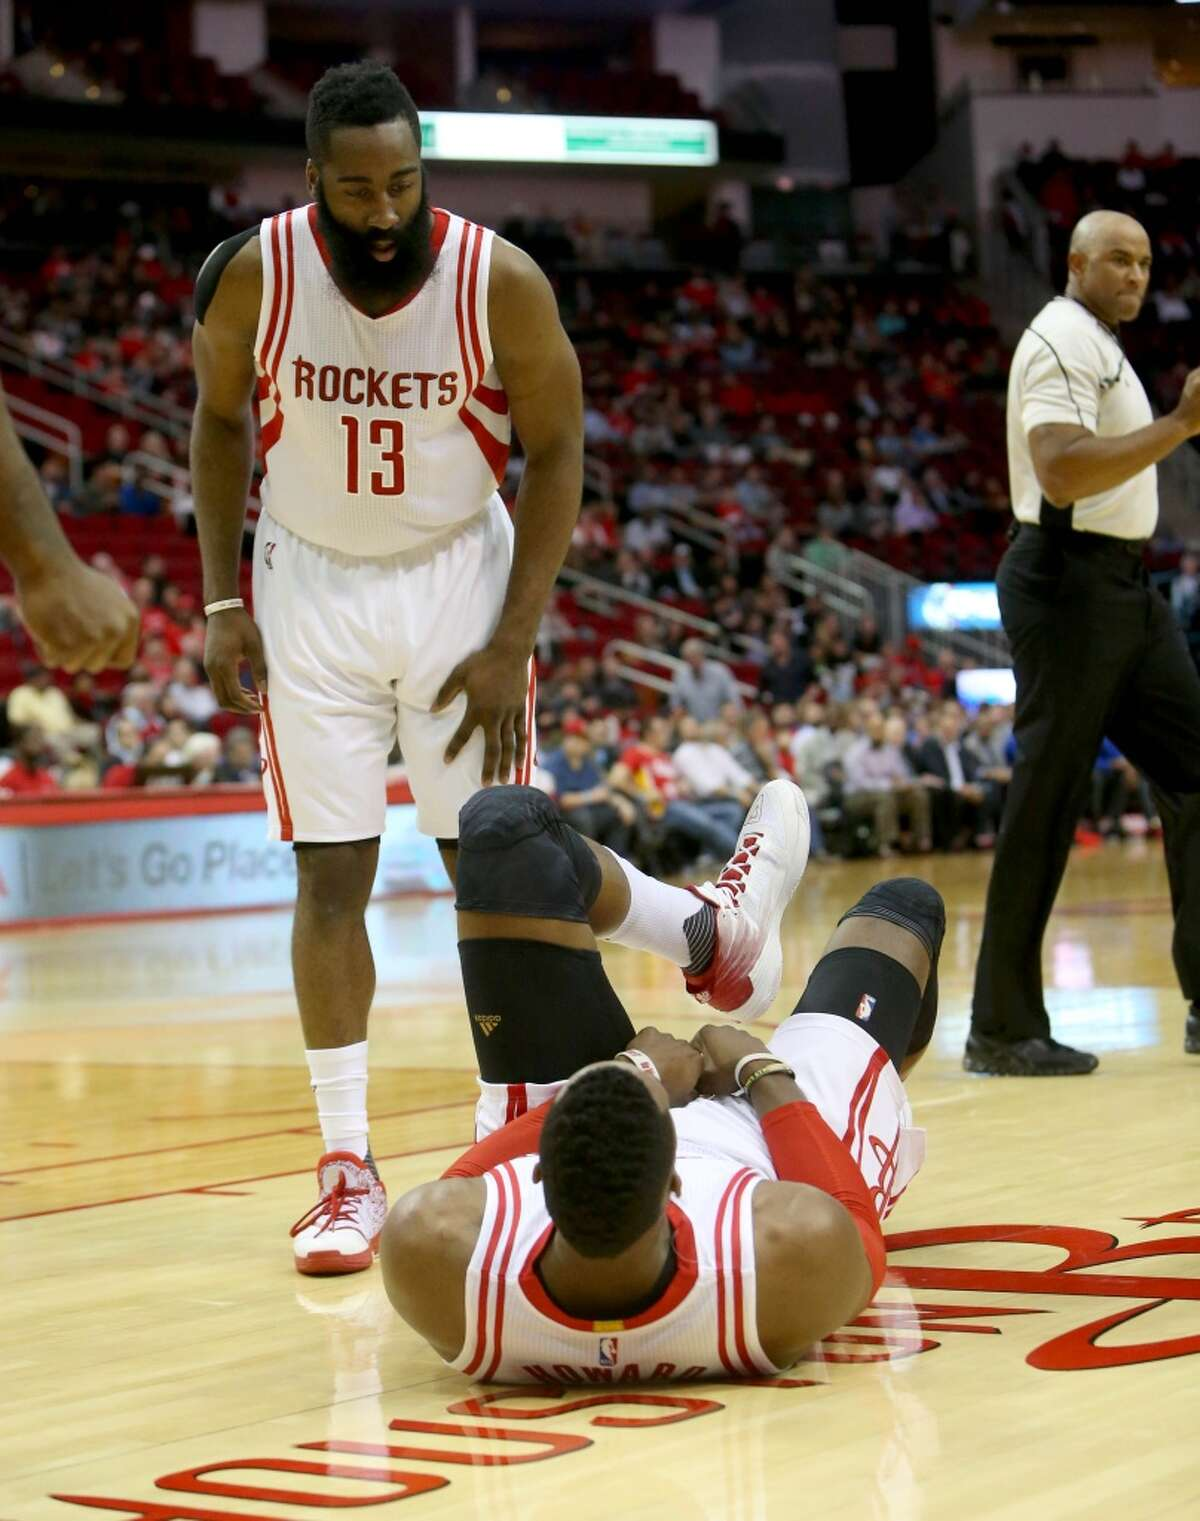 Houston Rockets guard James Harden (13) looks over Houston Rockets center Dwight Howard (12) lying on the floor after running into teammate Houston Rockets guard Ty Lawson (3) and Detroit Pistons forward Stanley Johnson (3) during the first quarter at the Toyota Center Wednesday, Jan. 20, 2016, in Houston. Howard left the game and went back into the locker room. ( Gary Coronado / Houston Chronicle )